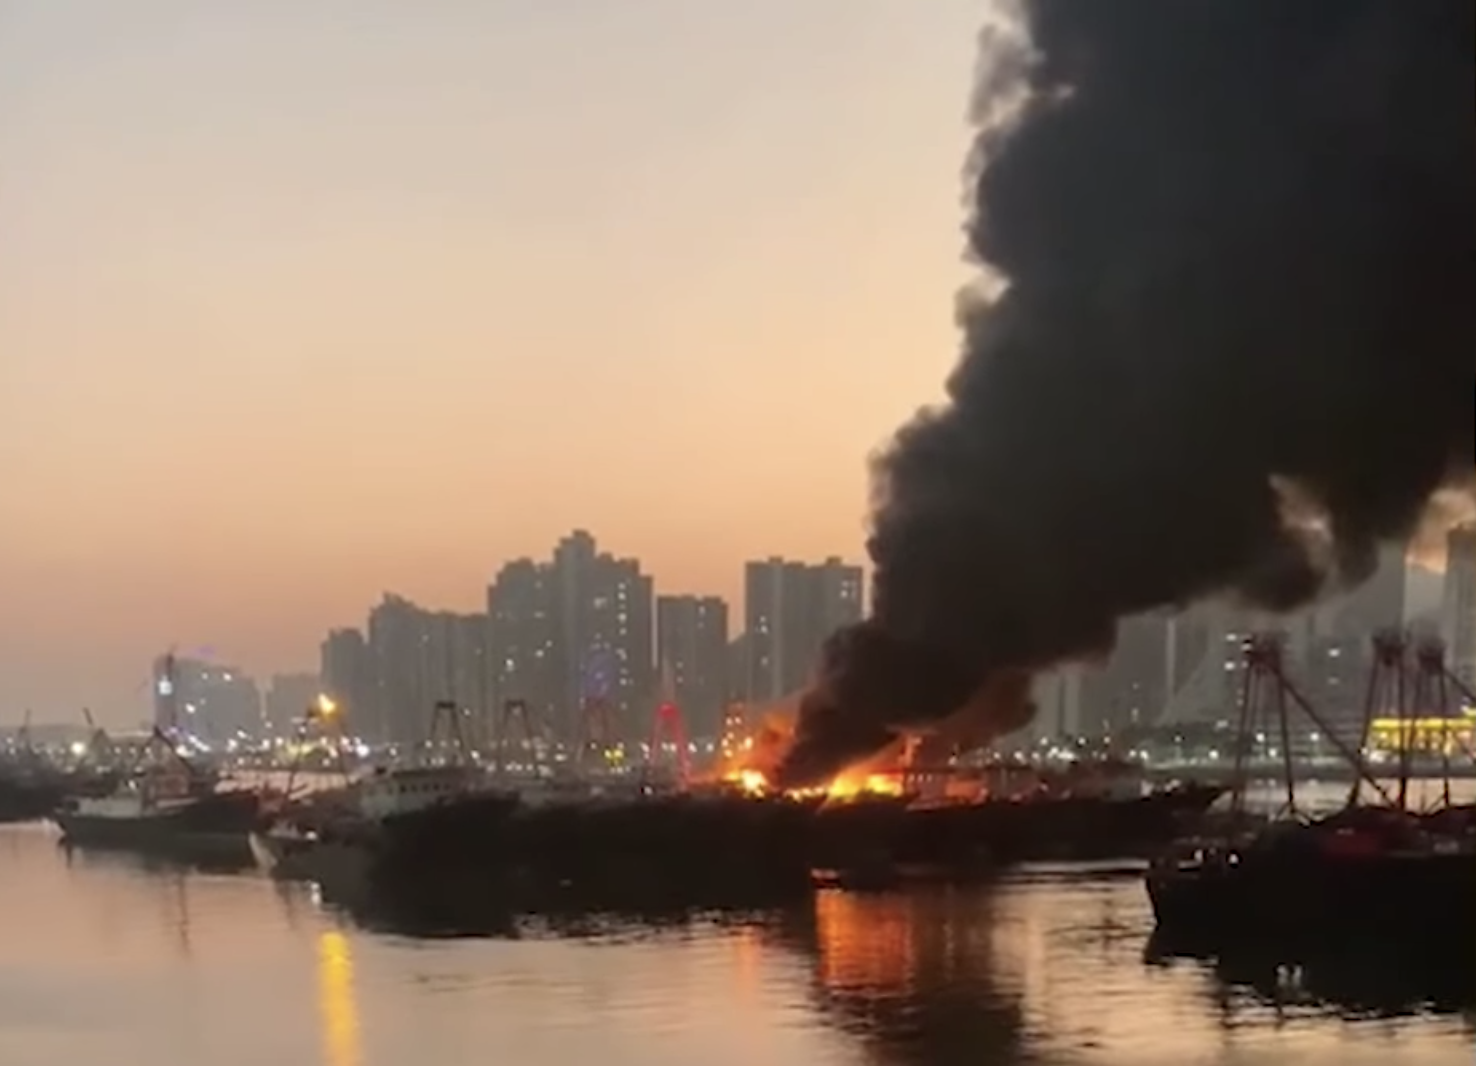 Three fishing boats engulfed in harbour blaze